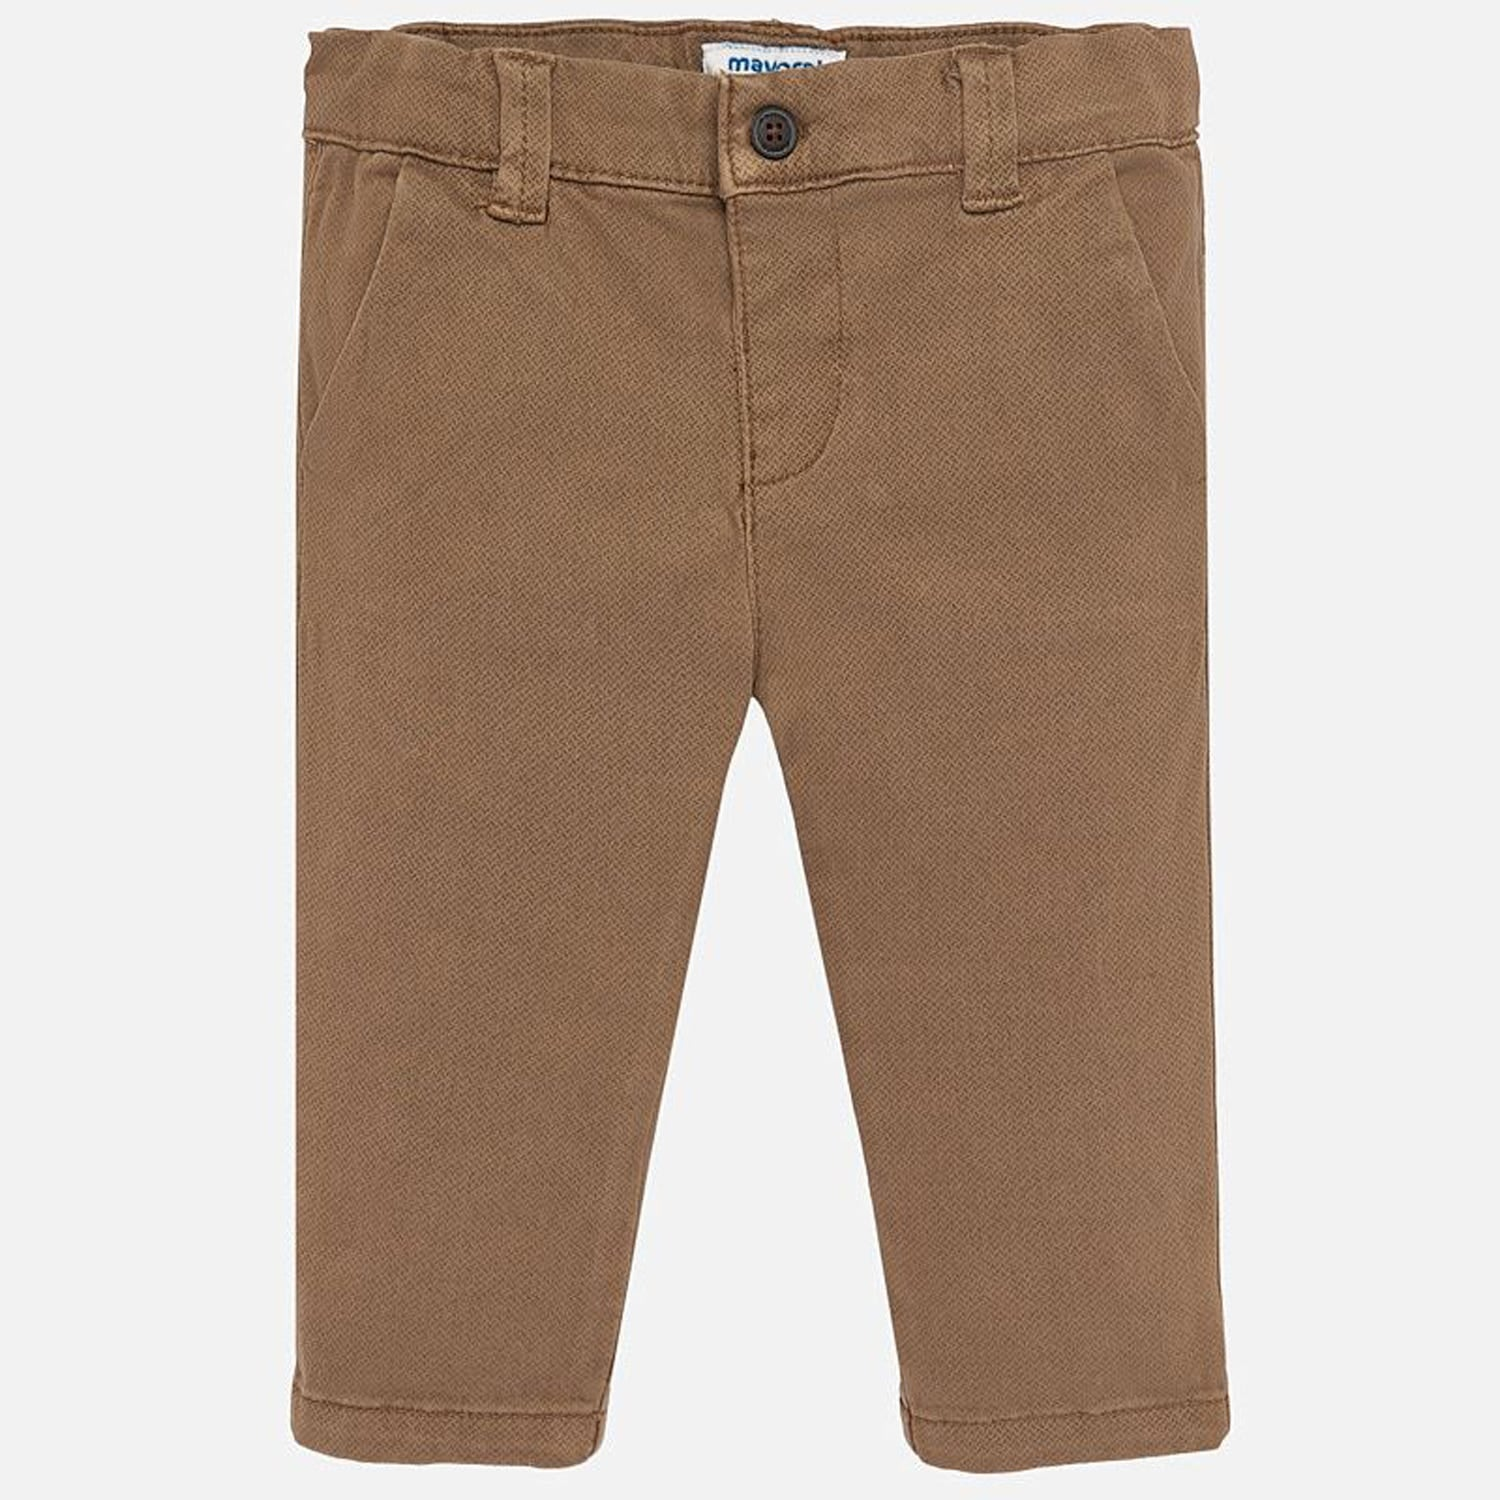 Mayoral printed chestnut chinos - The Mango Tree